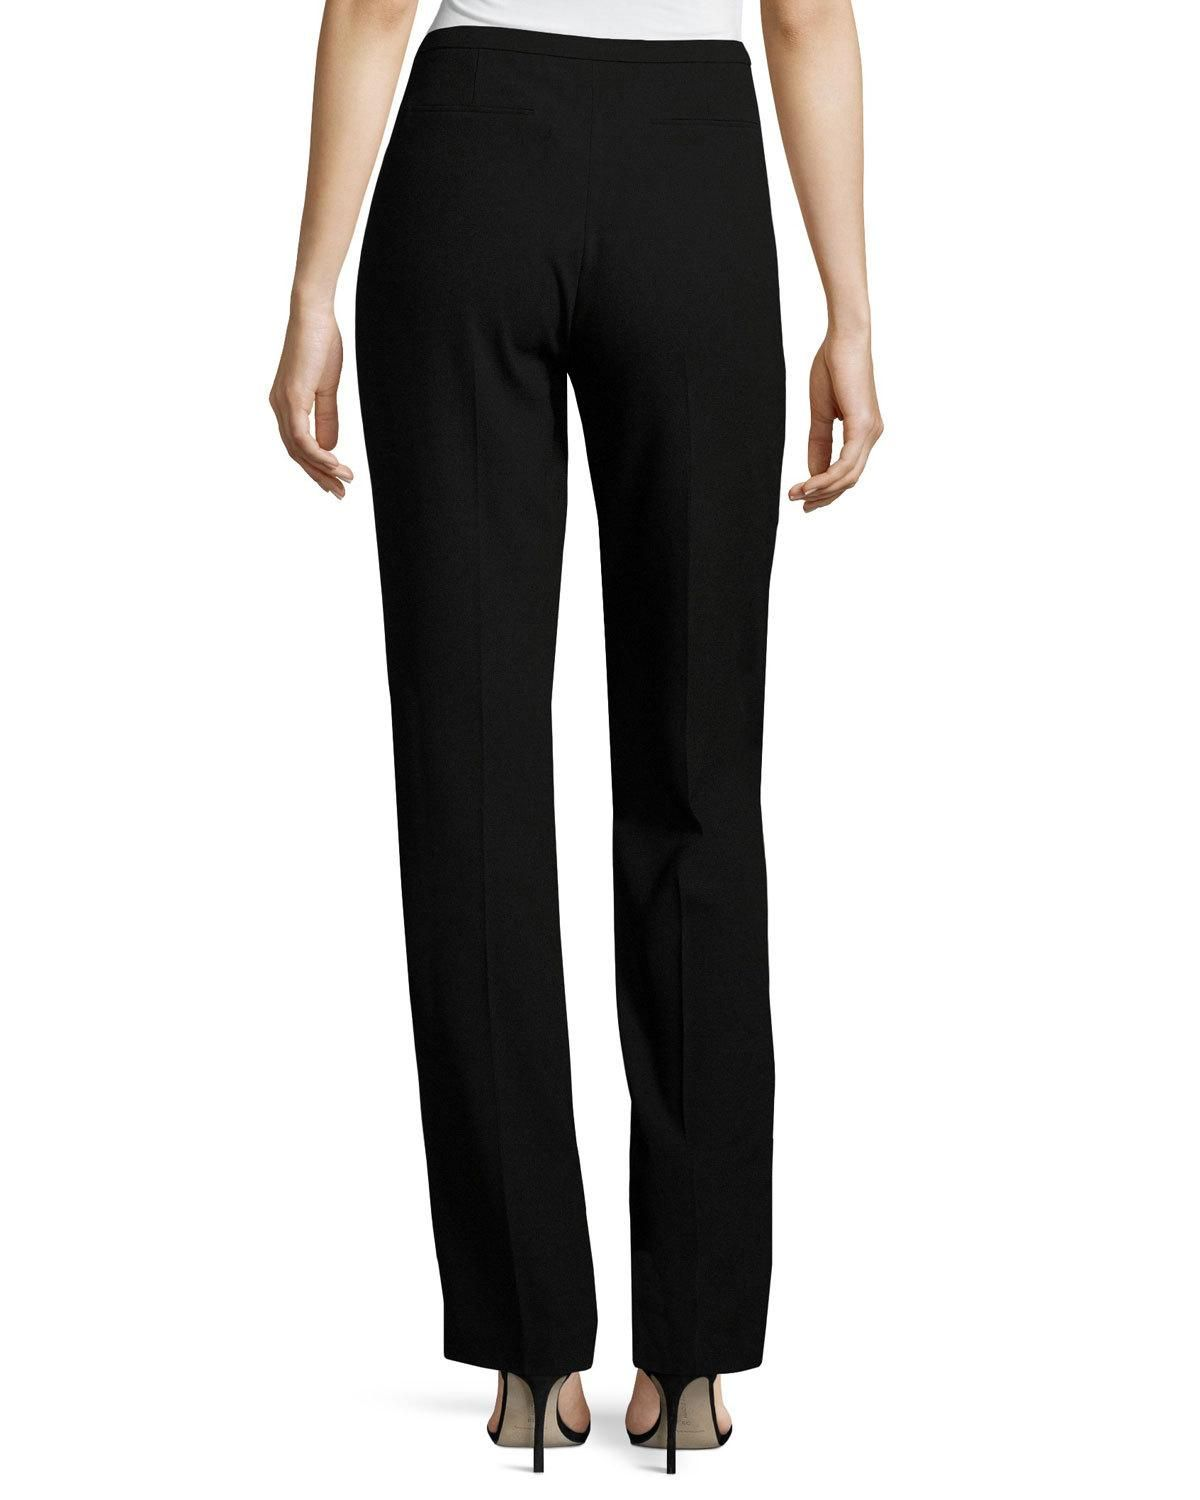 c1fd746086a48 Elie Tahari Stella Straight-Leg Stretch-Knit Pants